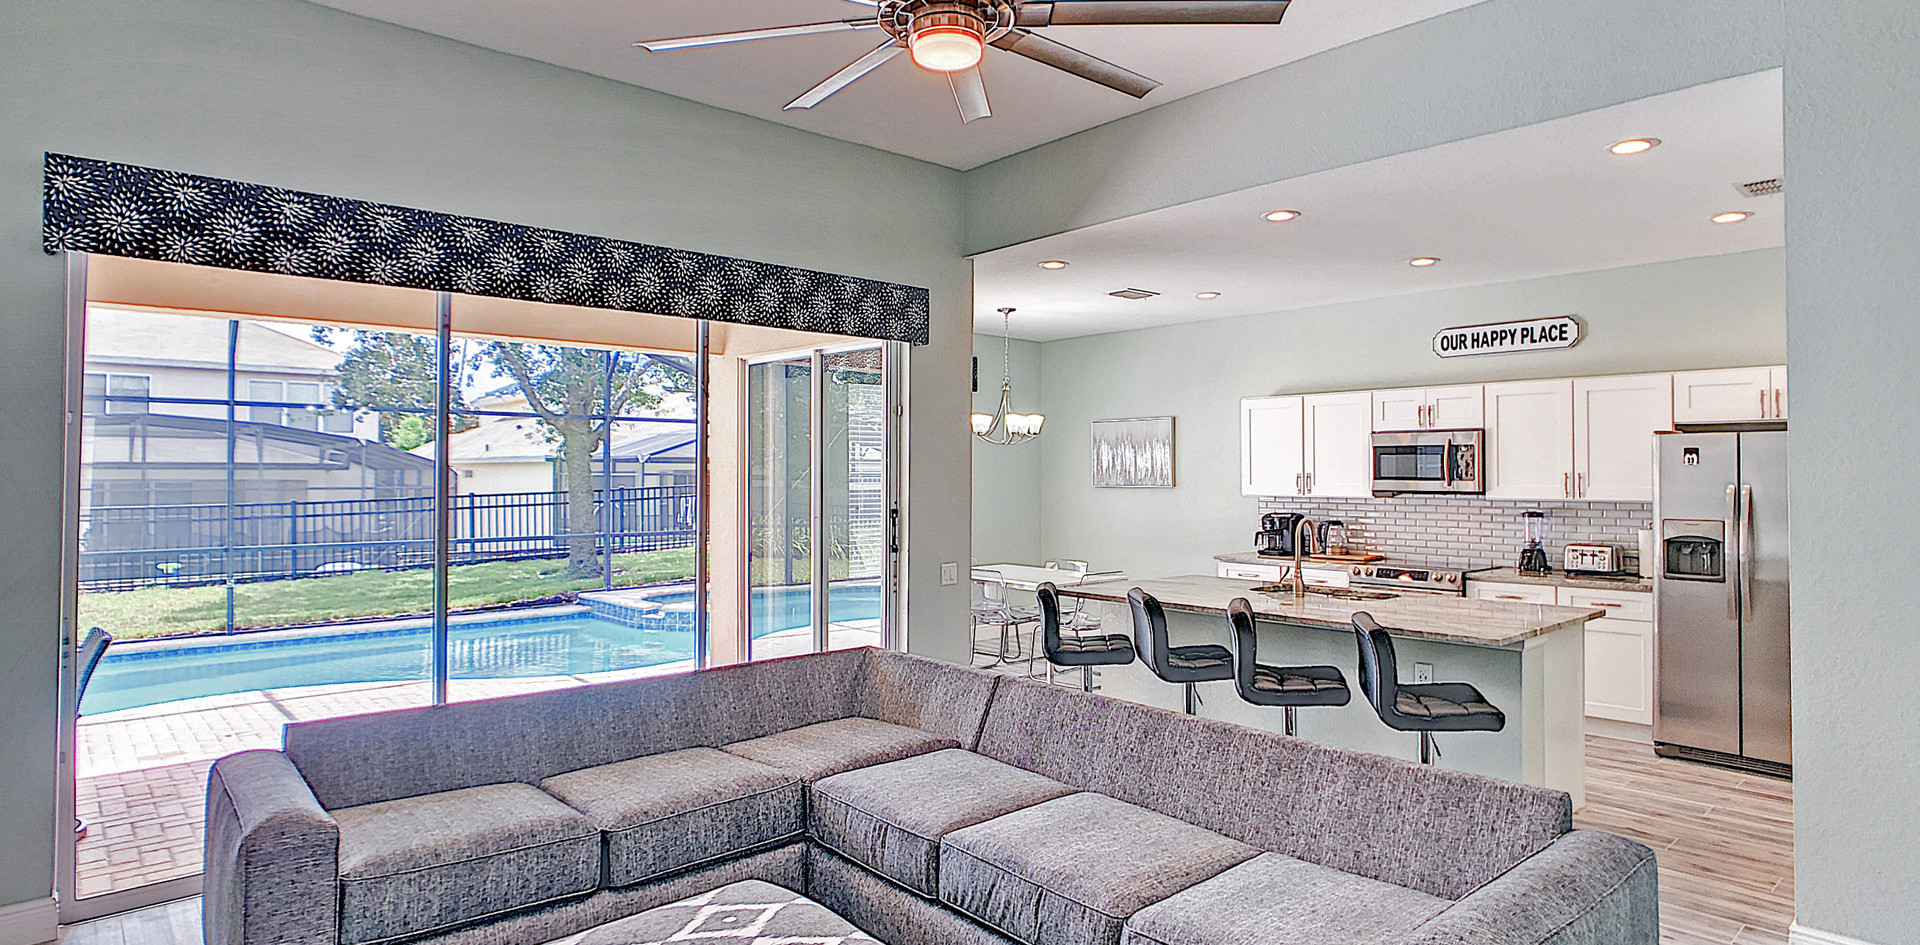 Lily Pad - Family, Kitchen, and Pool